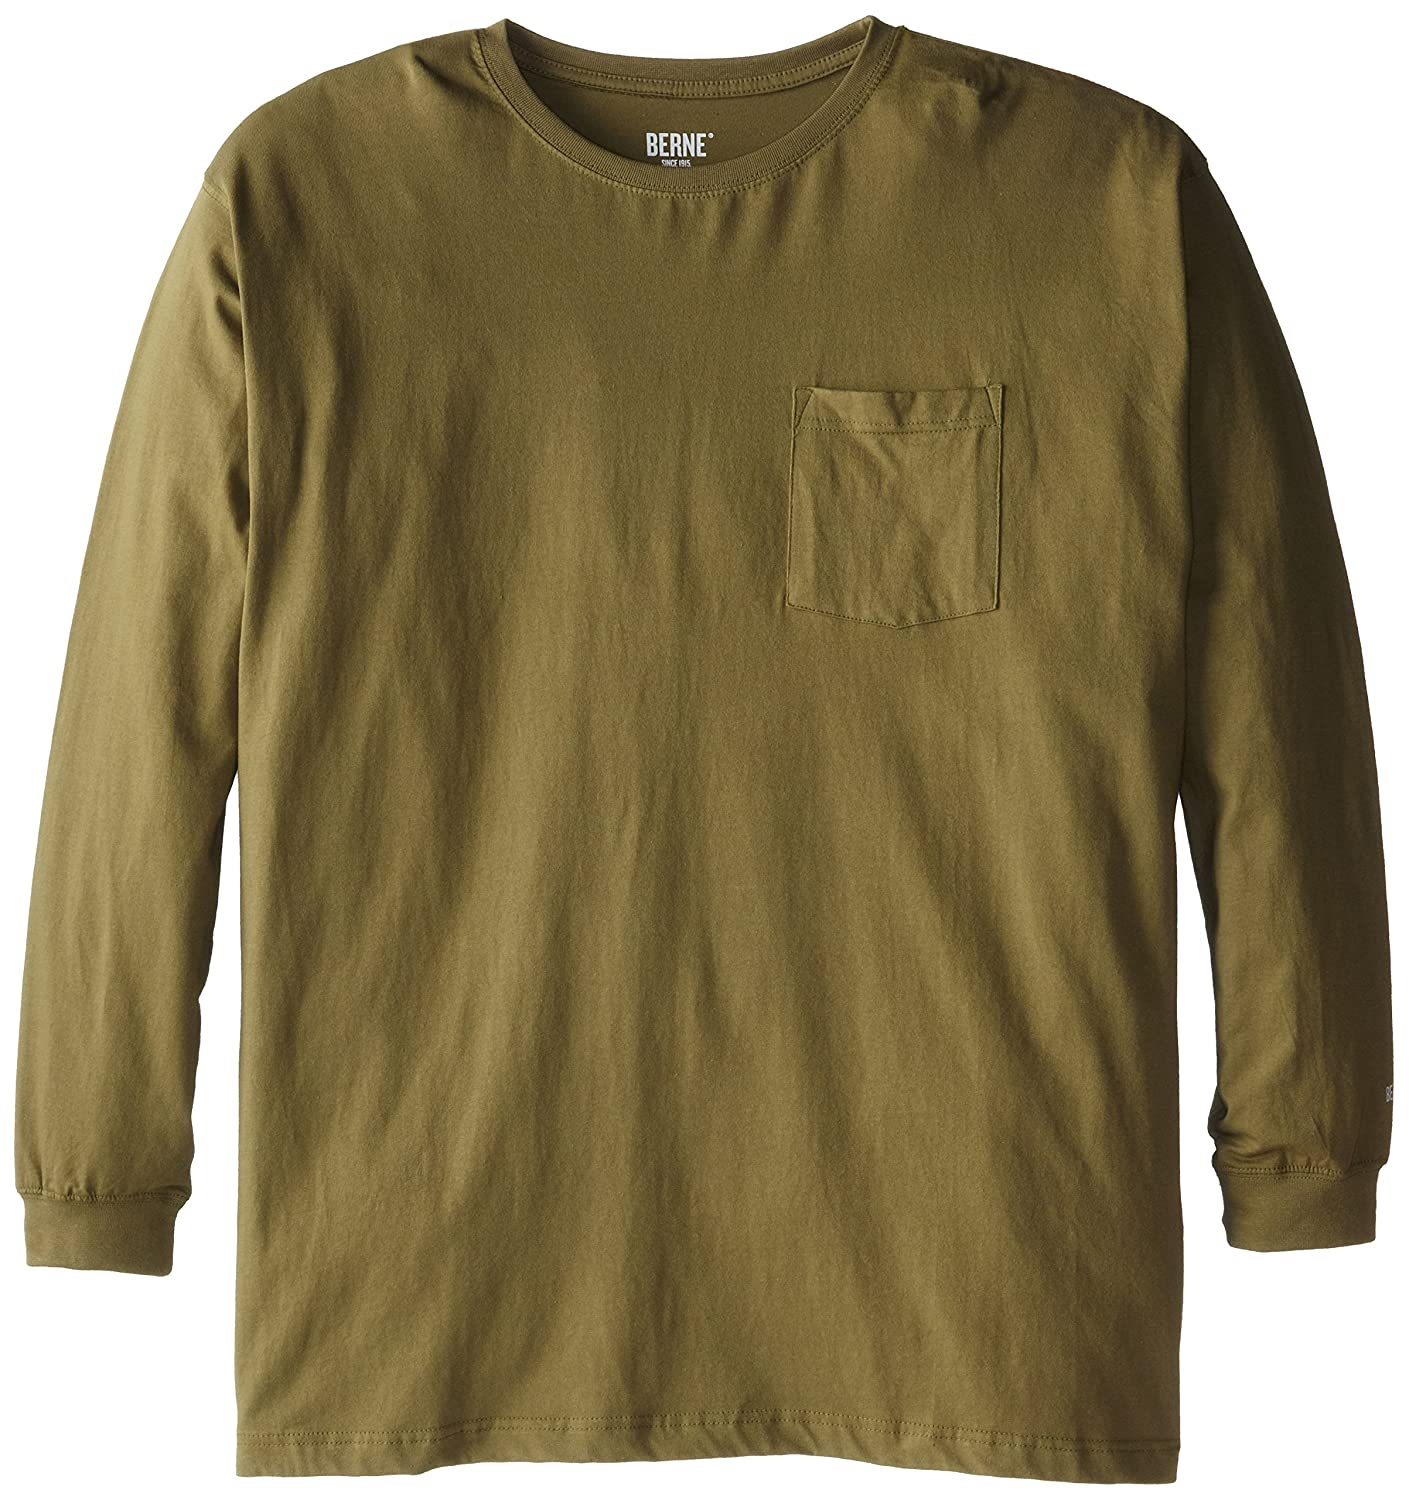 Berne Men's Big-Tall Heavyweight Long-Sleeve Pocket T-Shirt Berne Apparel Parent Code BSM23BT1